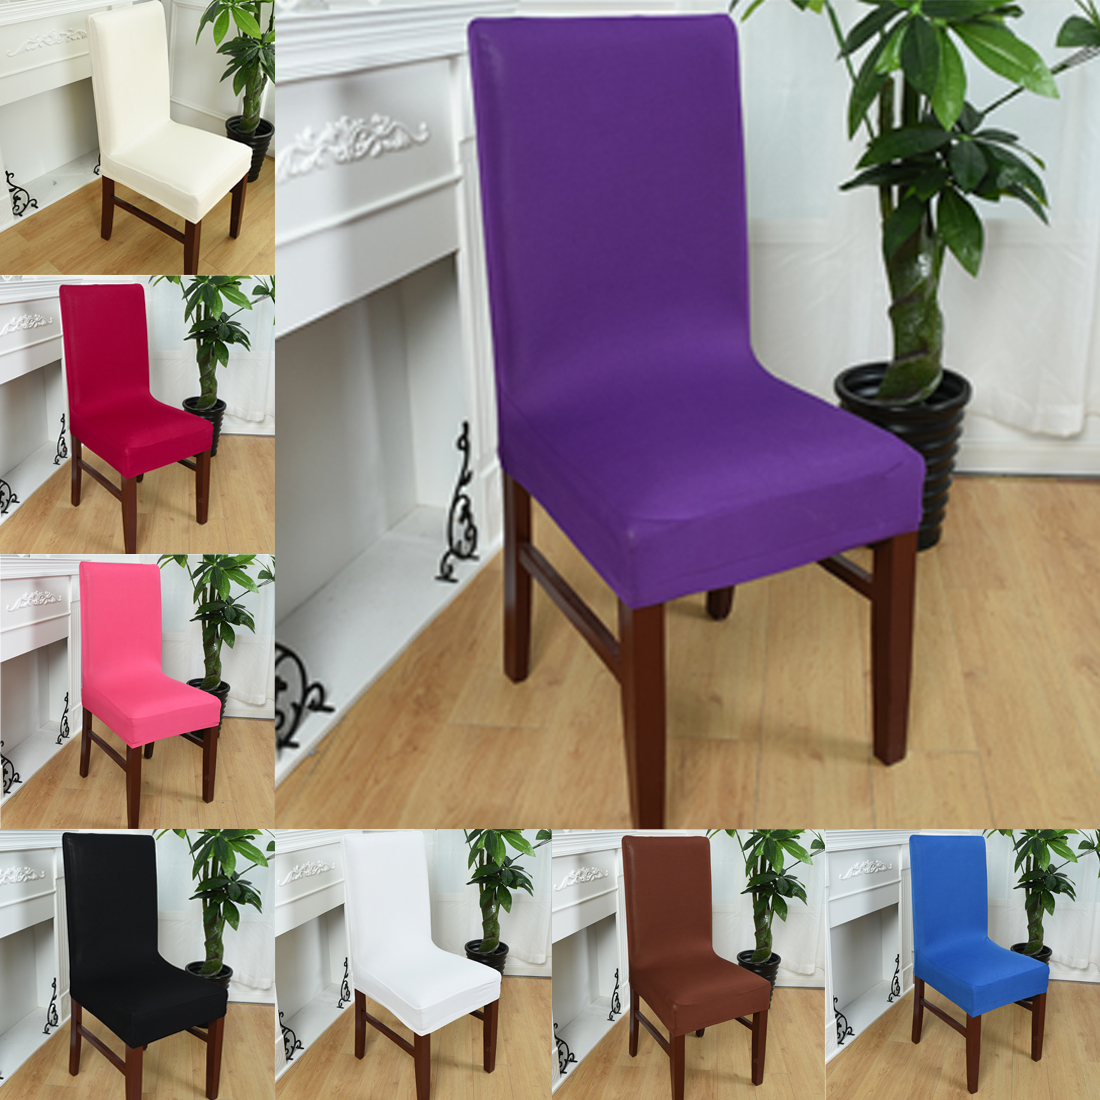 Free Shipping Spandex Strech Cadeiras For Dining Gaming Chair Weddings And The Office Ch ...